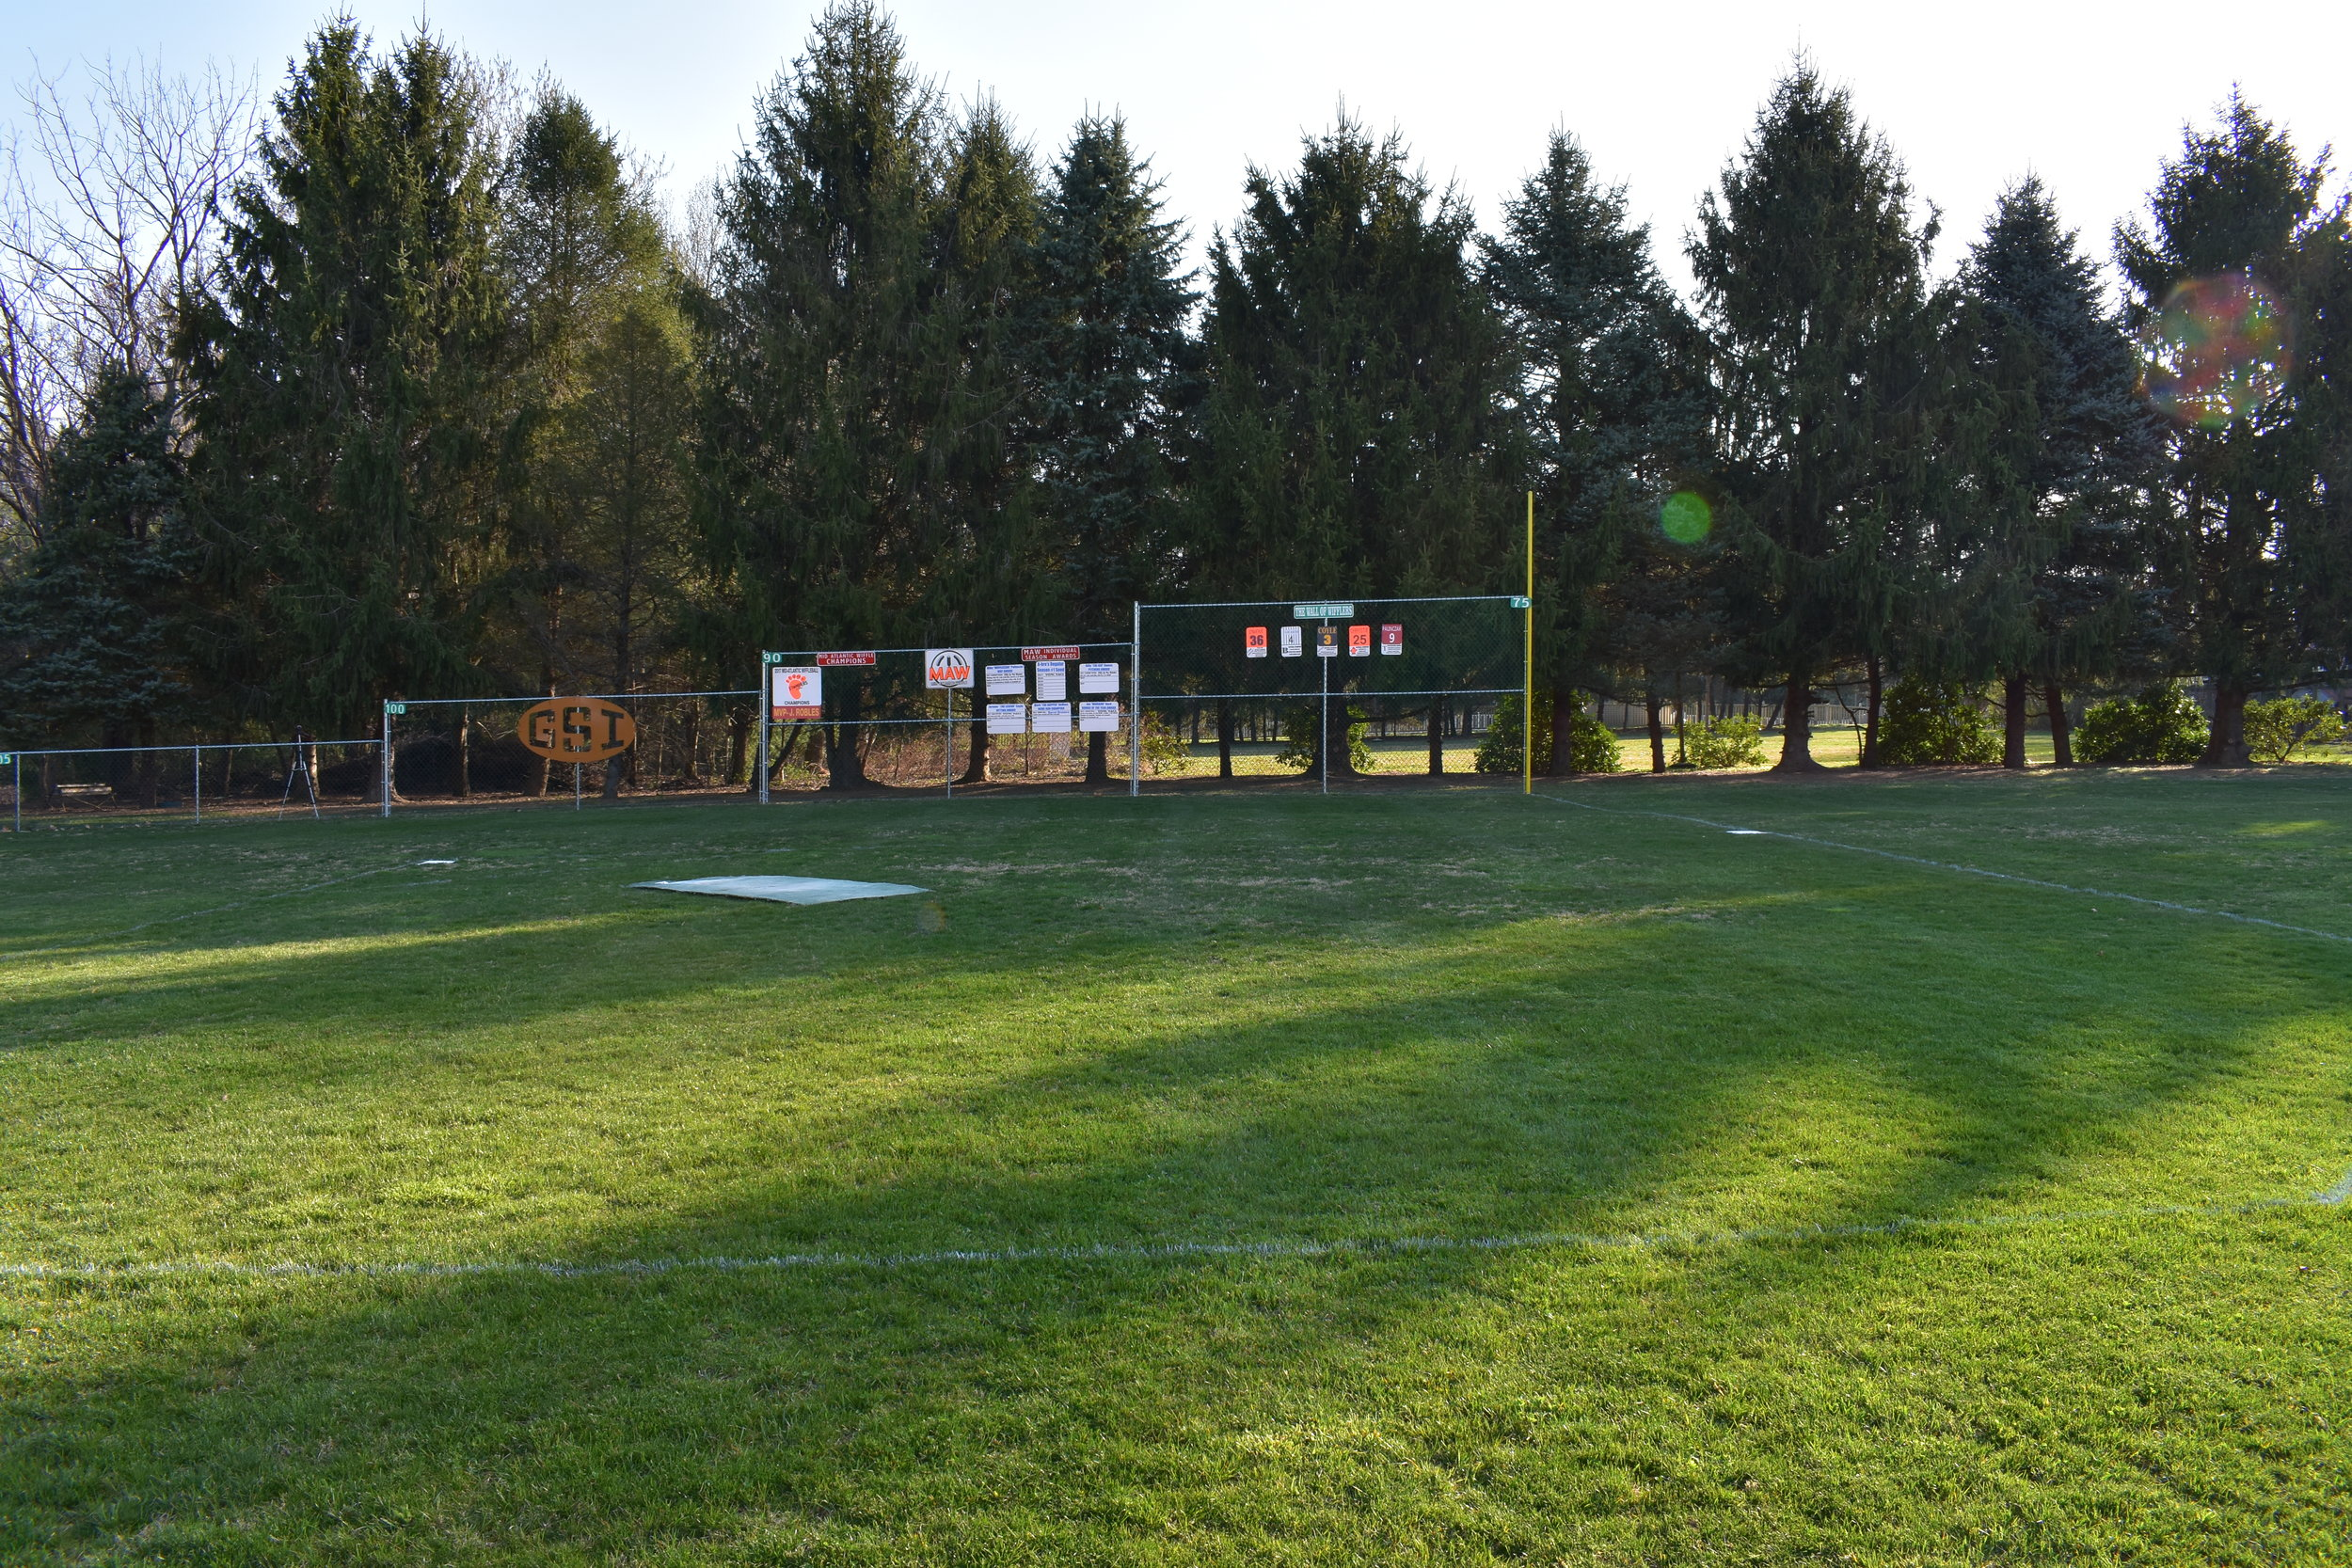 Sheff Field - Built in 2016, Sheff Field is MAW's signature field and is a favorite of all players. The forested backdrop makes for an excellent batter's eye and the field plays relatively wind-neutral. Left field is 87 feet, left center is 100 feet, dead center is 105 feet - all with four foot high fences. Right field is a lefties' dream - just 75 feet but with a 10 foot fence that goes down 2 feet feet in each section of the power alley. Signs to commemorate several regular MAW teams adorn the left field wall. In right field are signs celebrating the accomplishments of prior season award winners and champions, as well as the